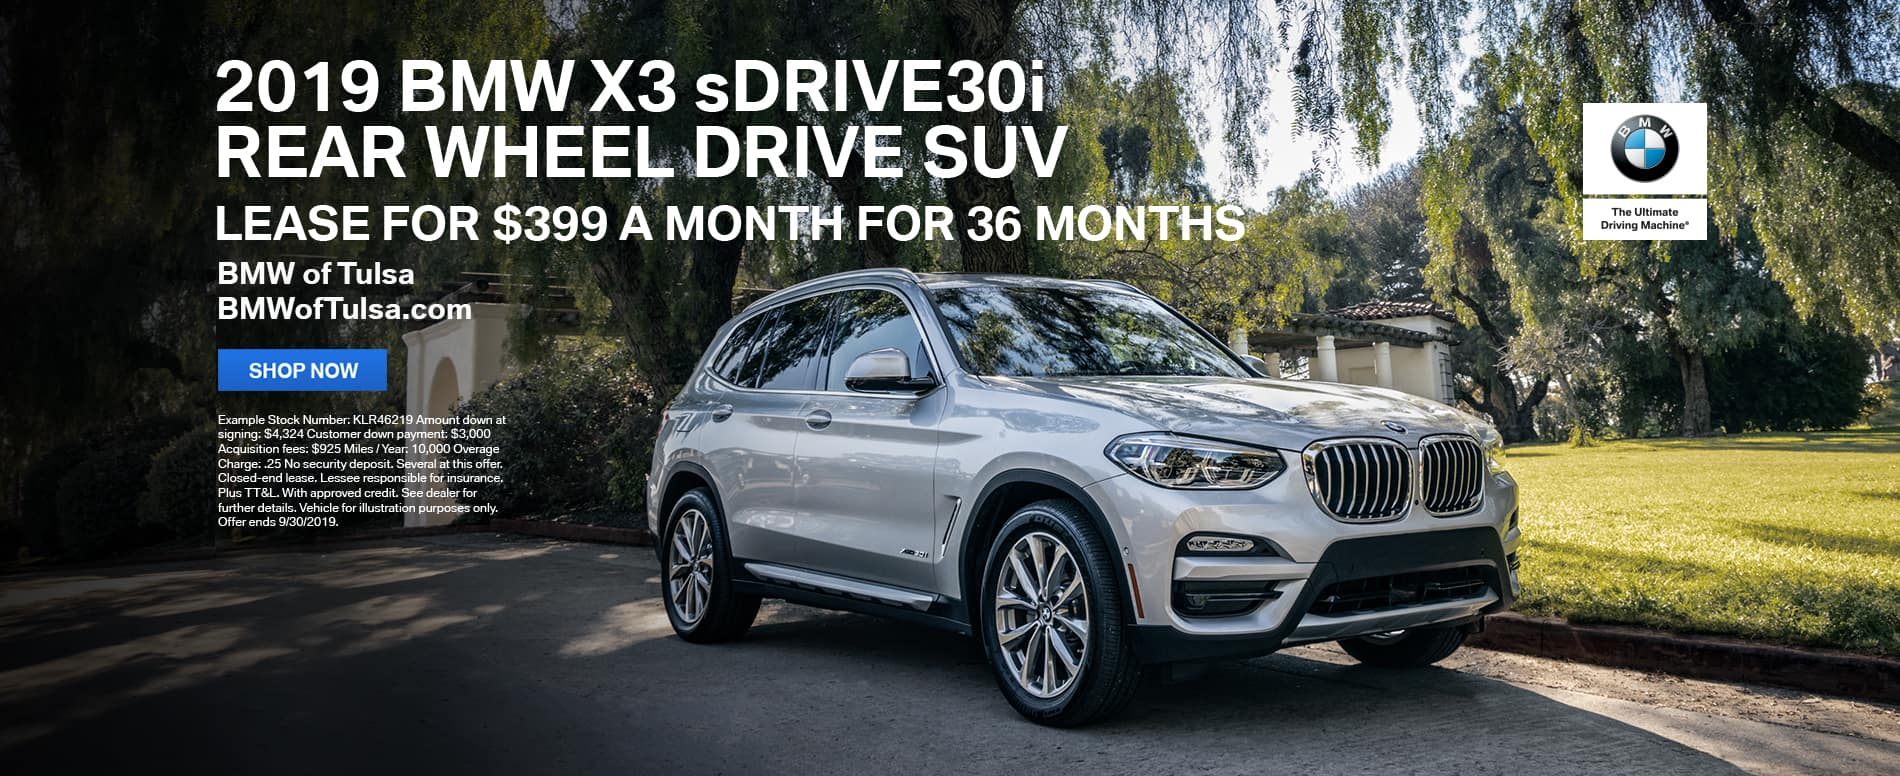 2019_BMW_X3_sDRIVE30i_Rear_Wheel_Drive_SUV_Lease_Offer